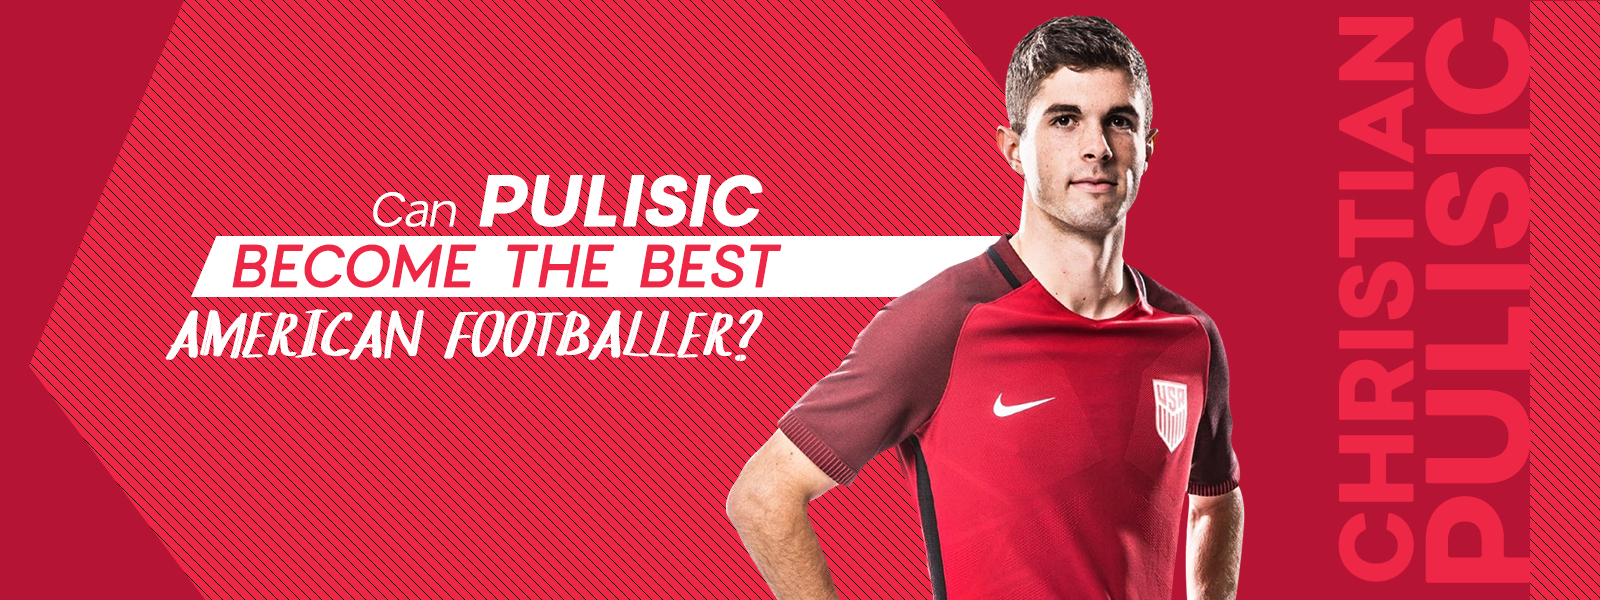 Can Christian Pulisic Become The Best American Soccer Player?